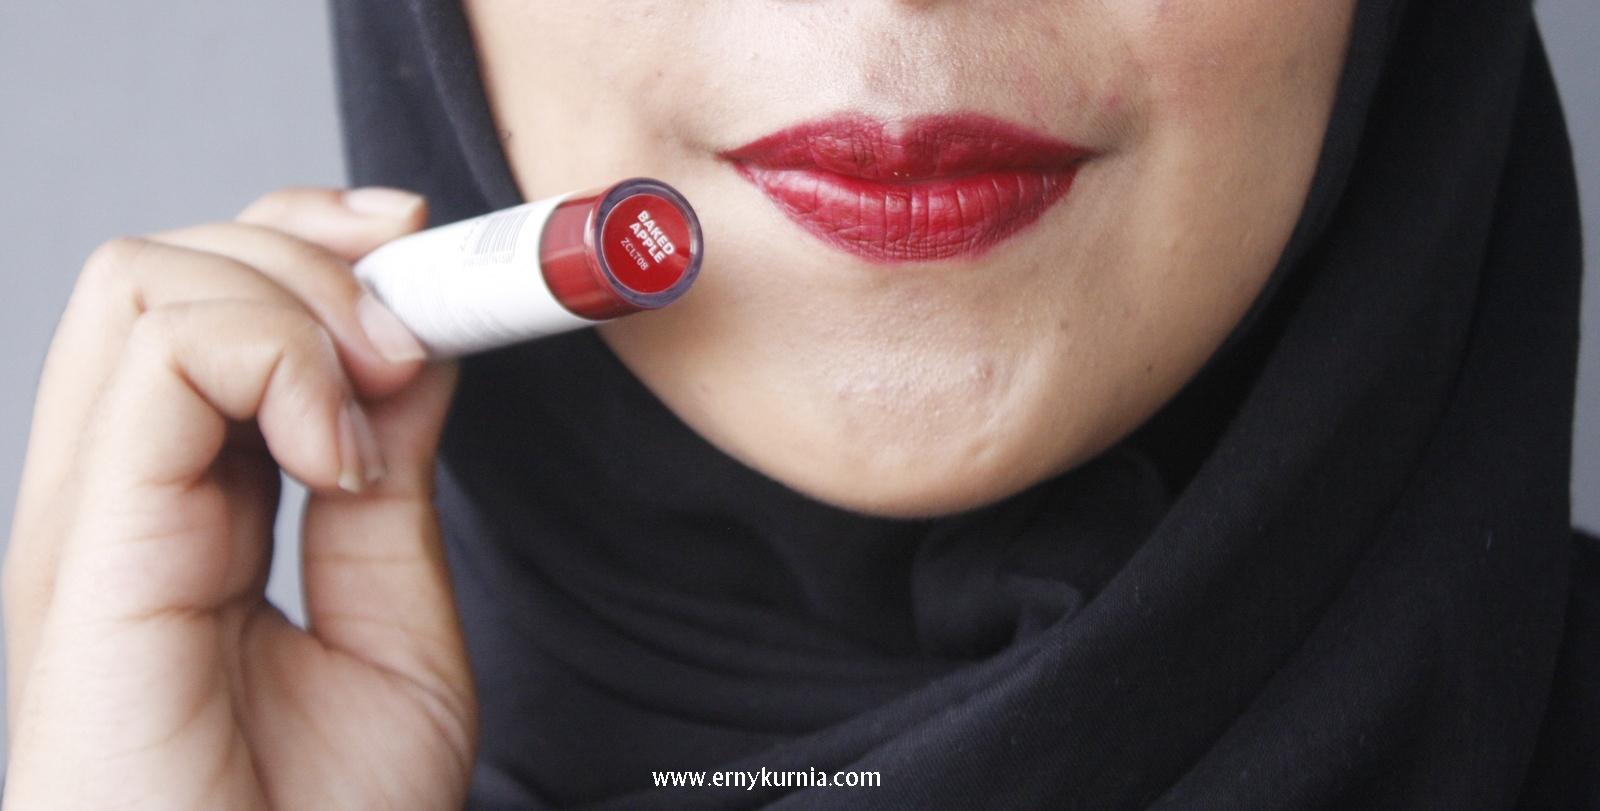 lip paint, Zoya Lip Paint, Baked Apple, Lipcream, Lipcream Lokal